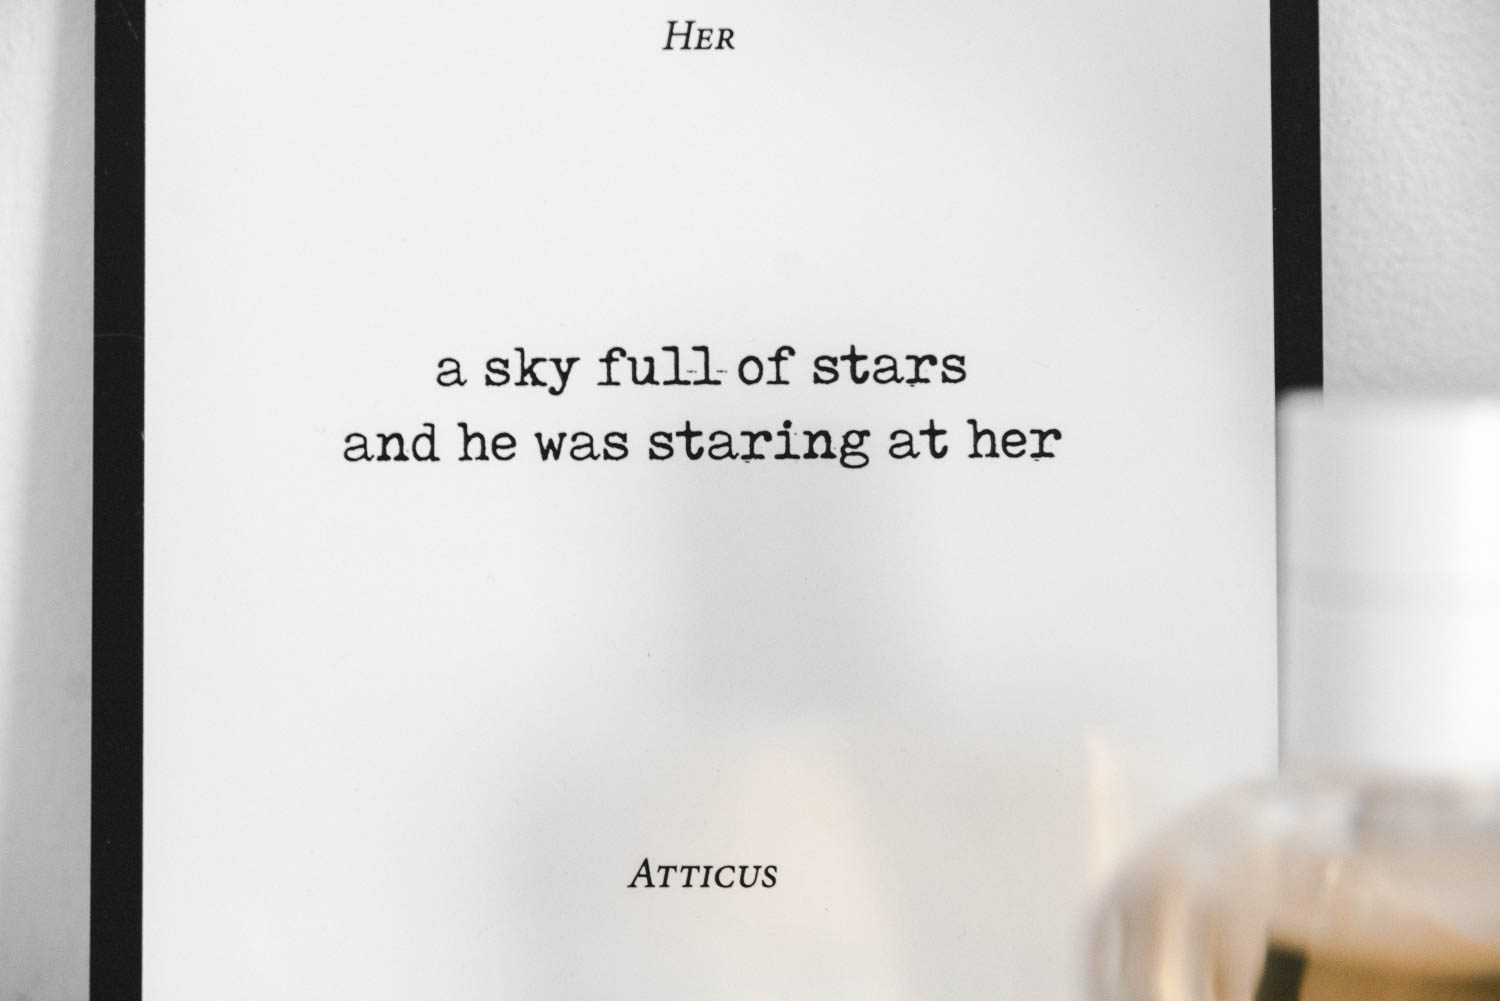 """a sky full of stars and he was staring at her"" - Atticus 